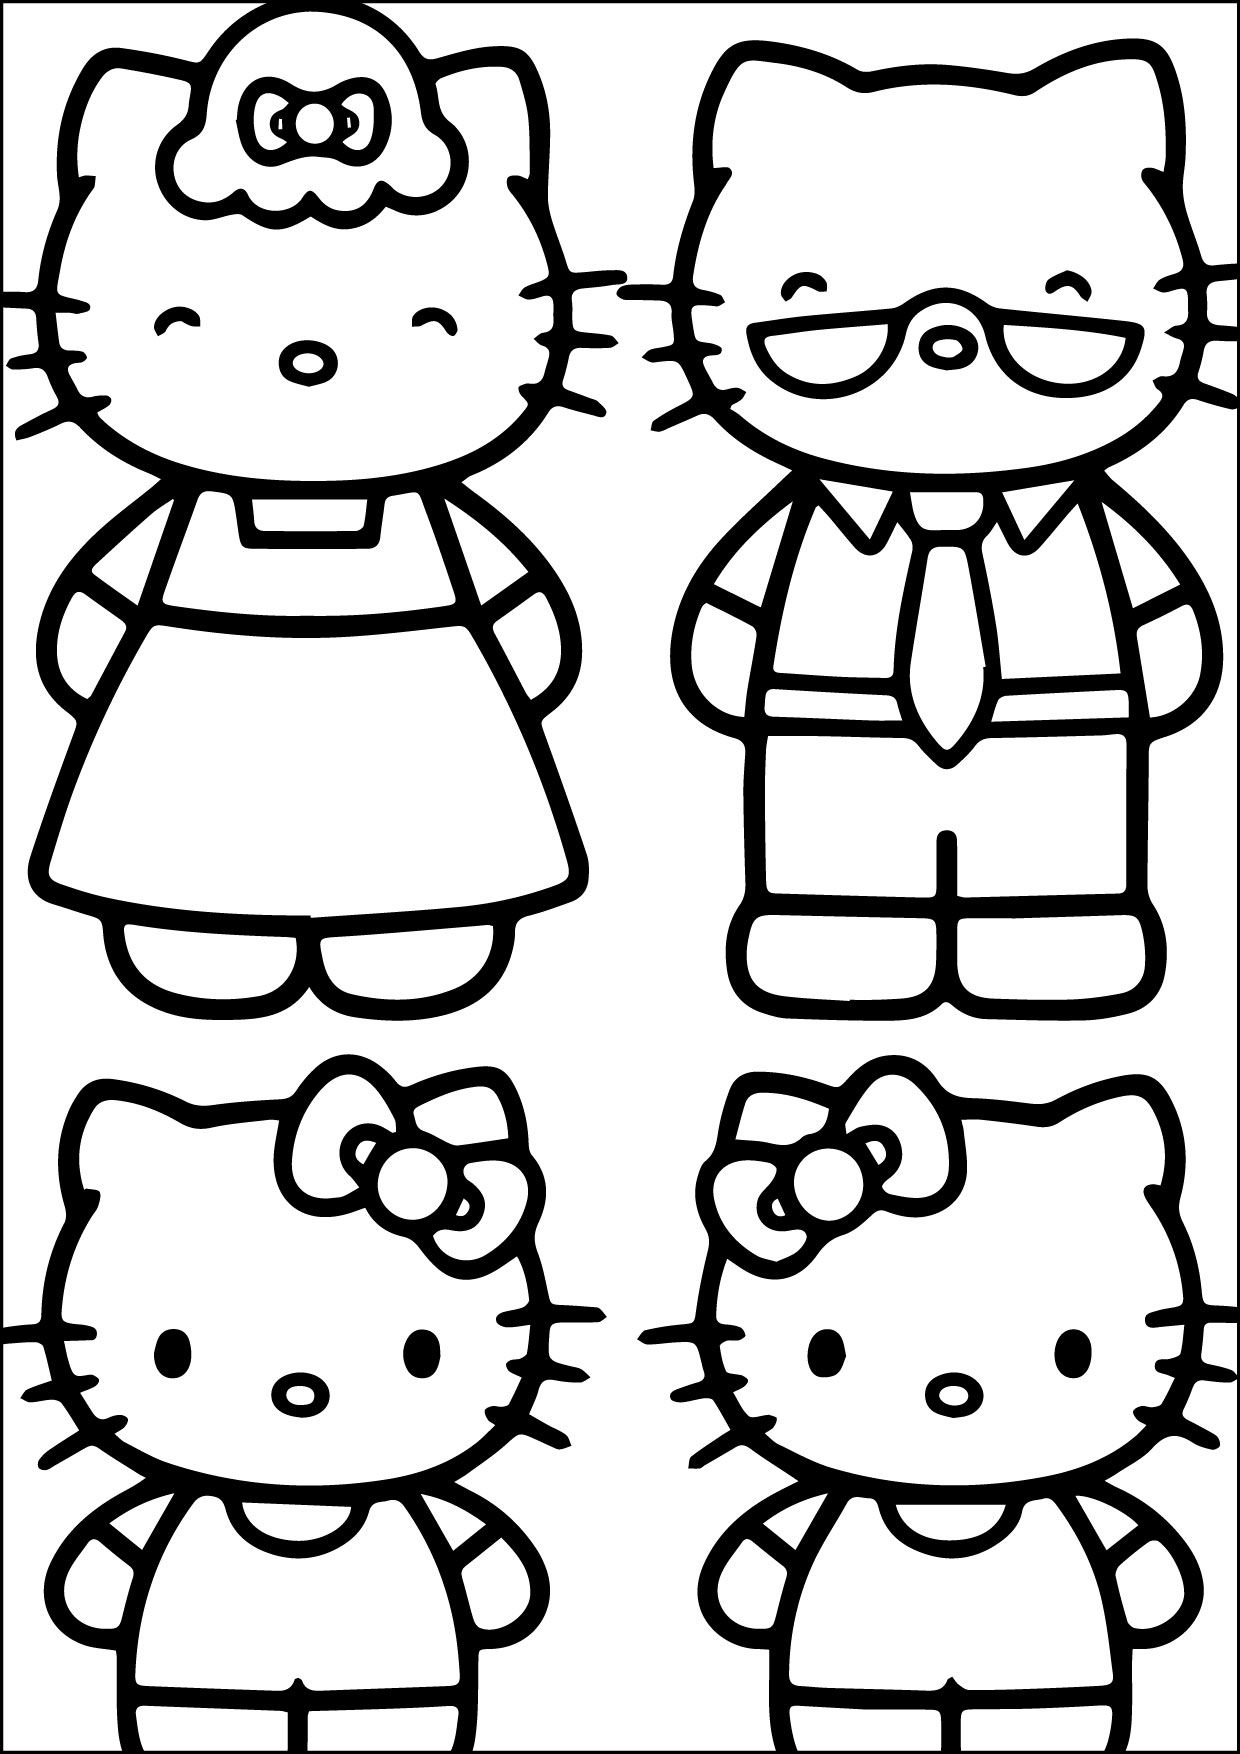 Hello kitty birthday · awesome sami fireman coloring pages 07 09 2015 035922 check more at http